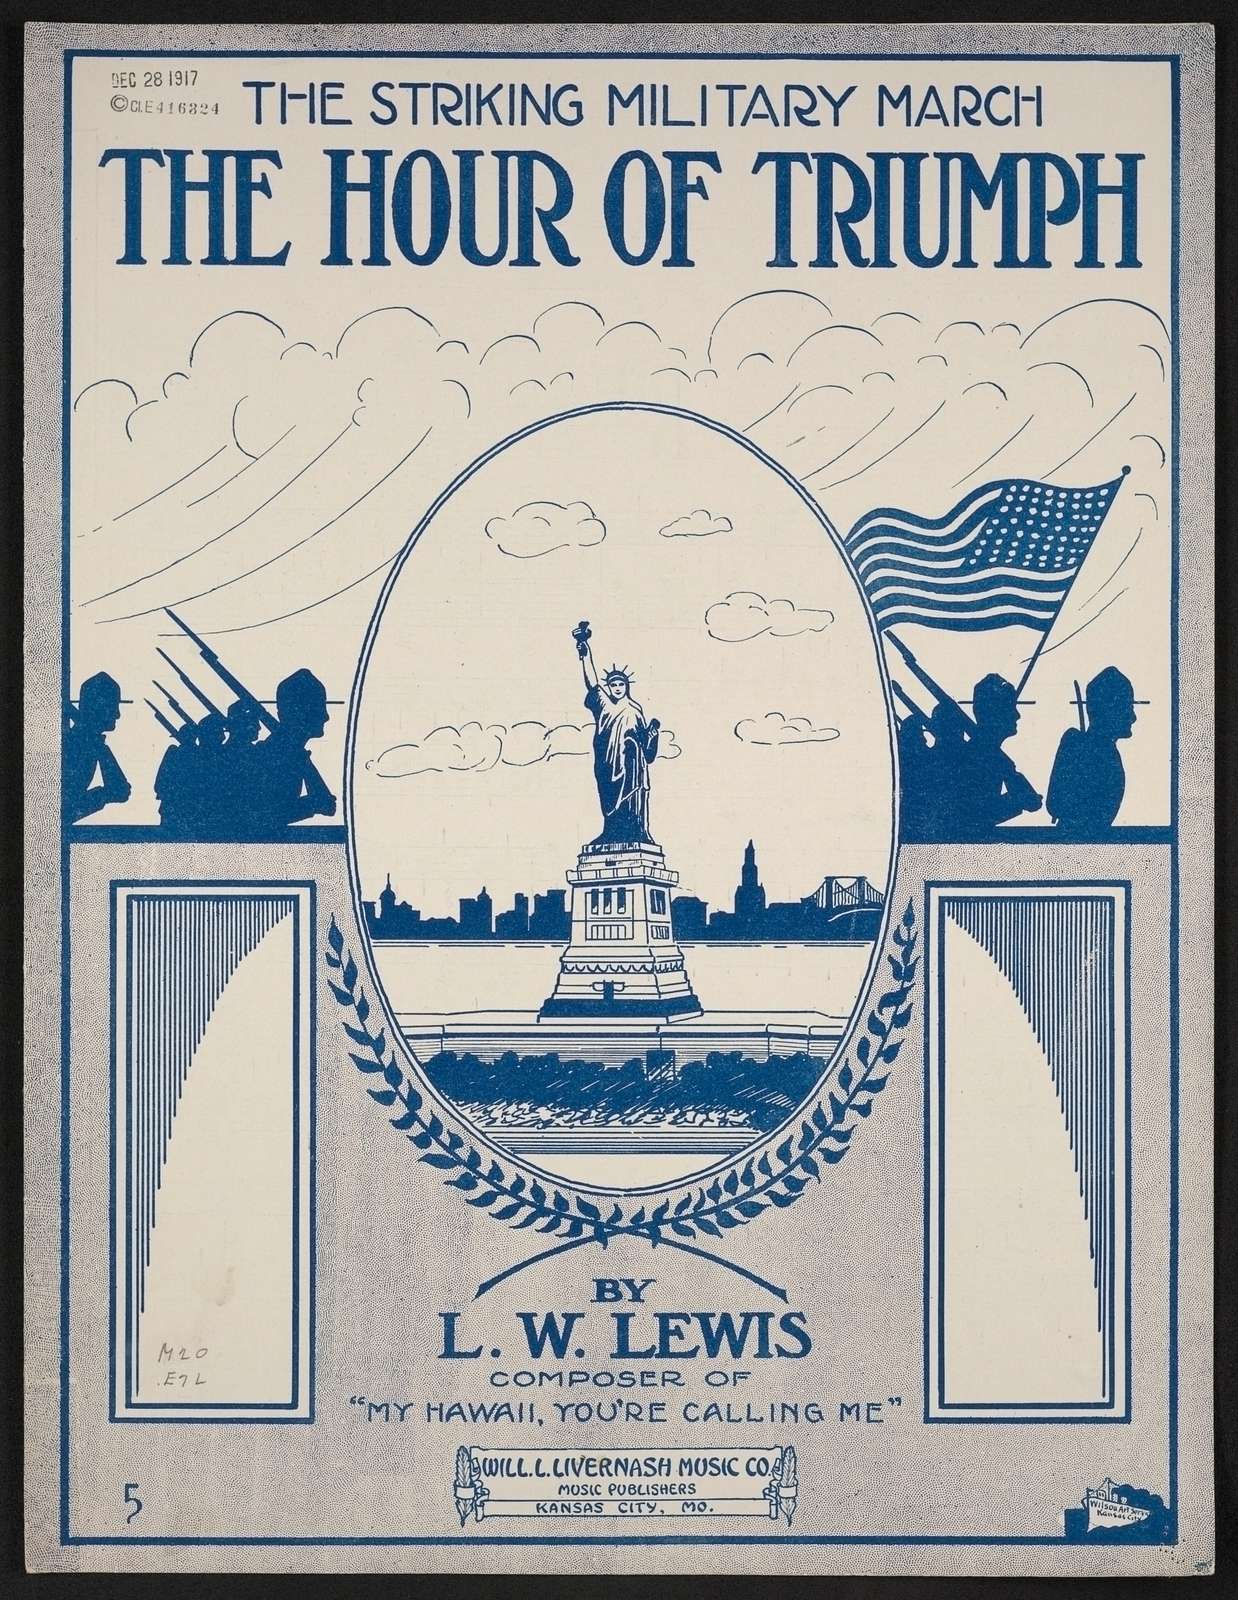 The hour of triumph march